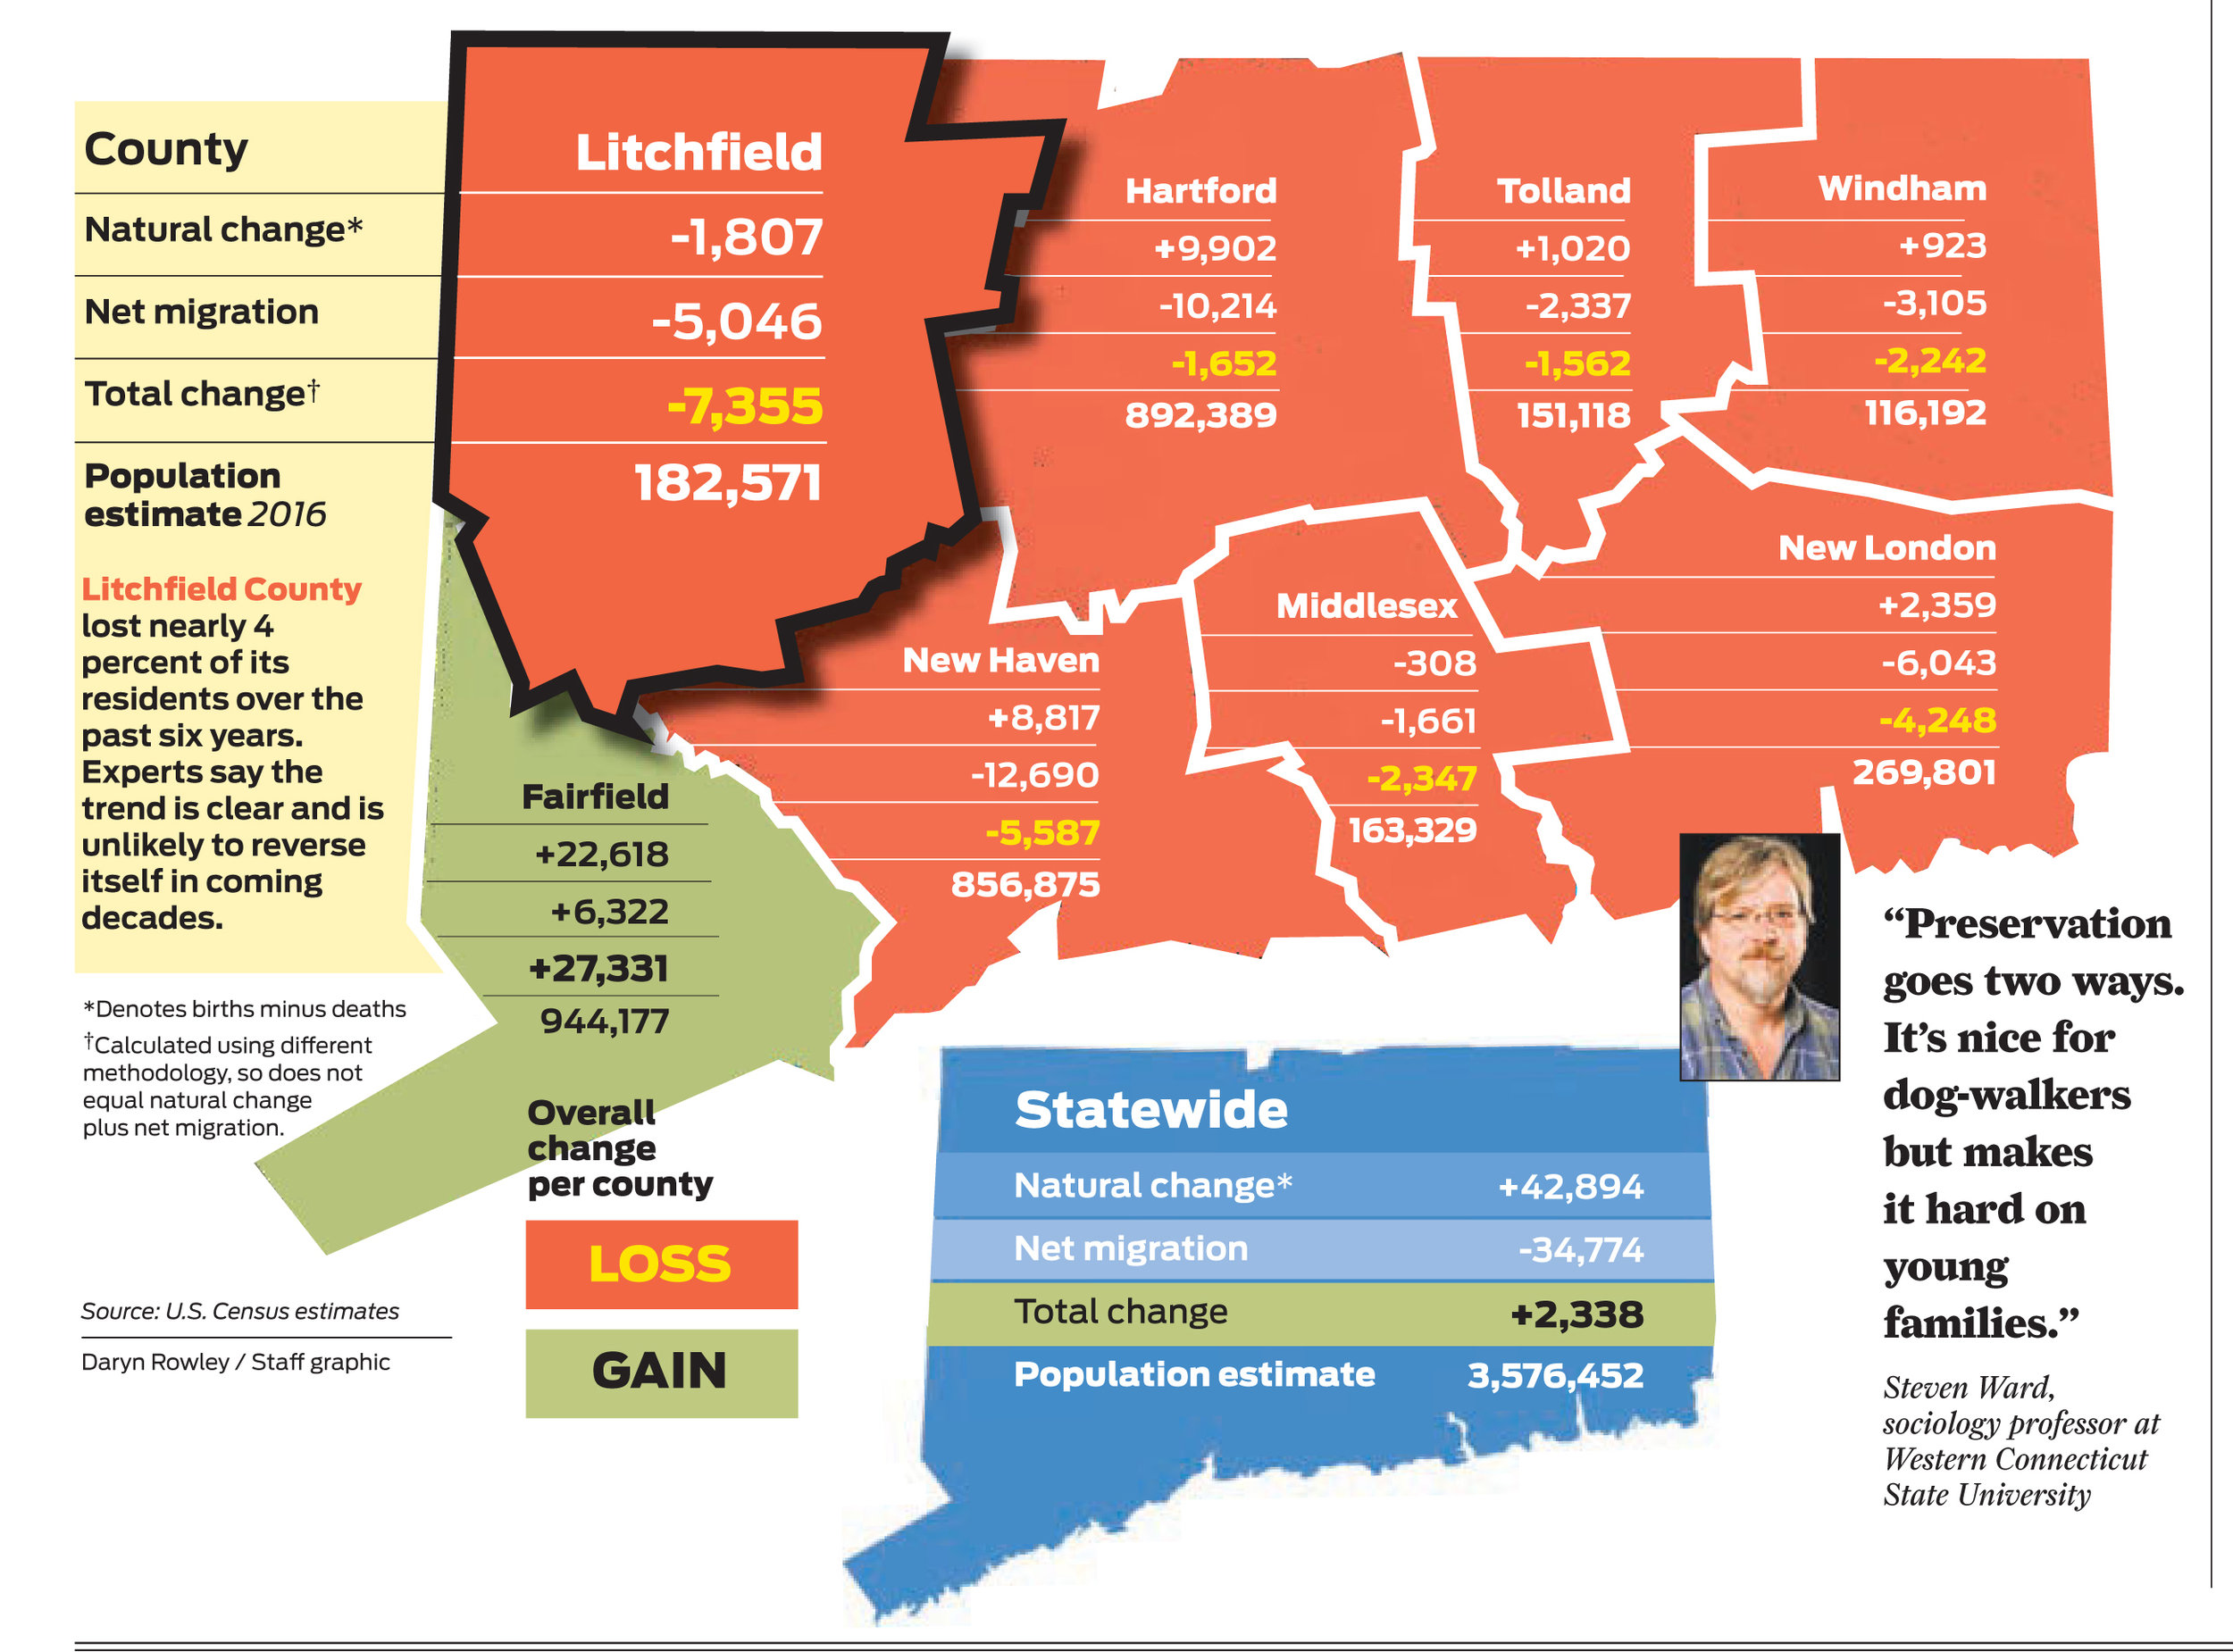 Litchfield County struggles with population decline